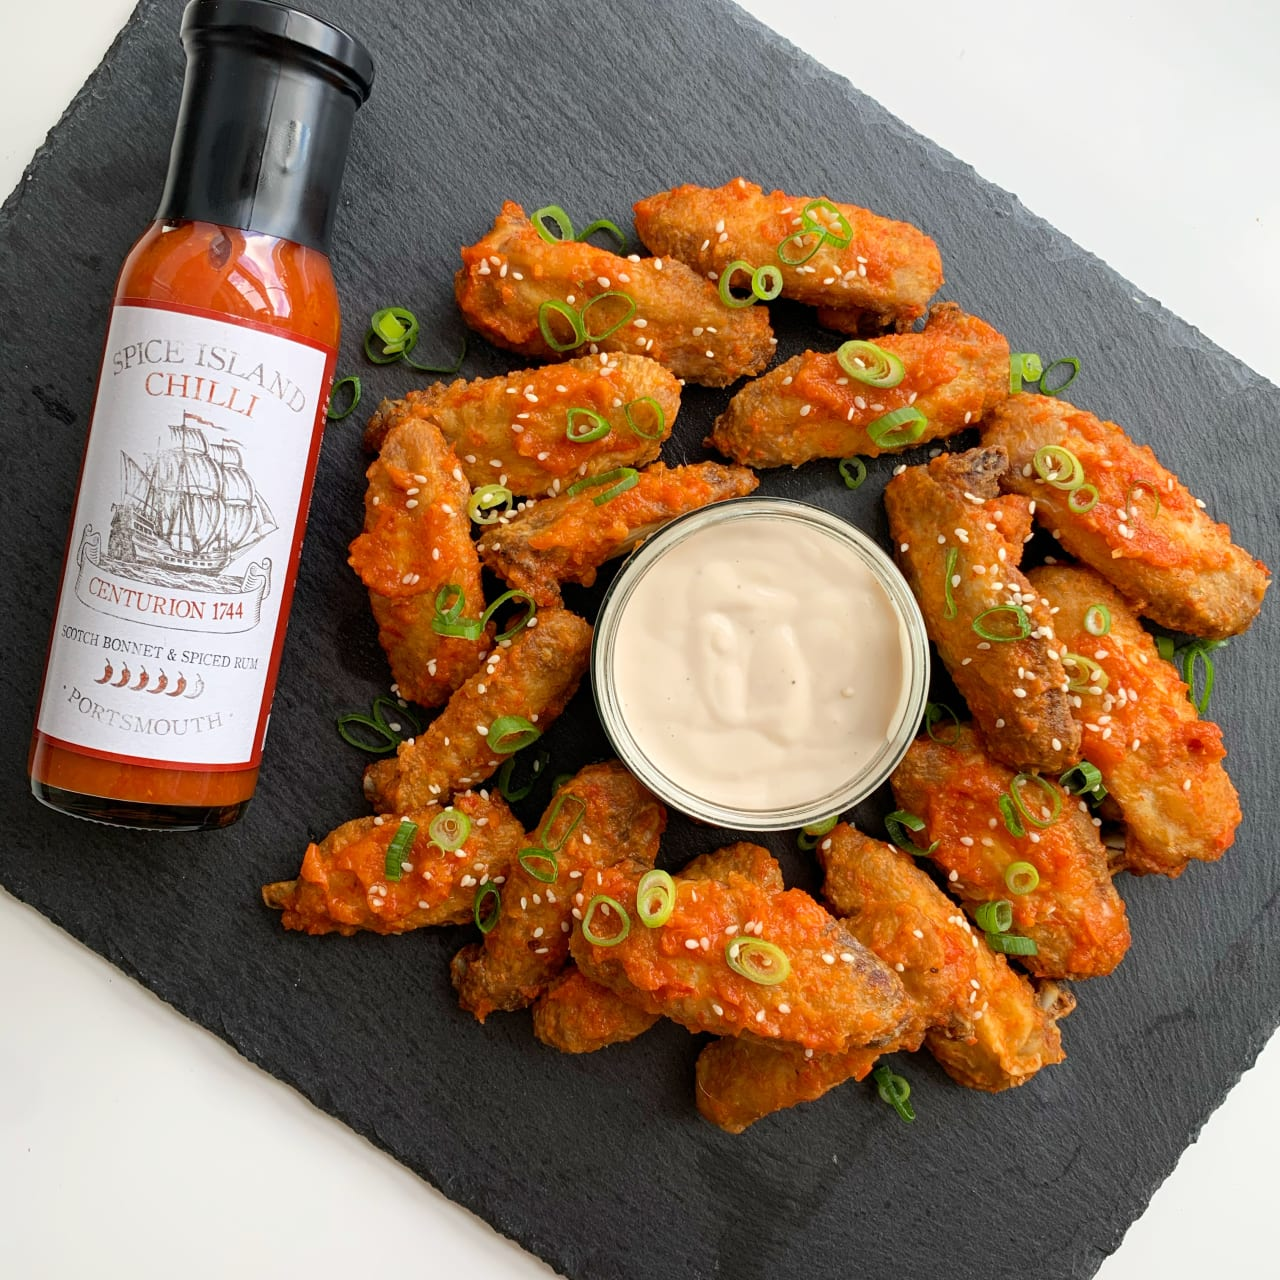 Crispy fried scotch bonnet & spiced rum chicken wings with a blue cheese dip